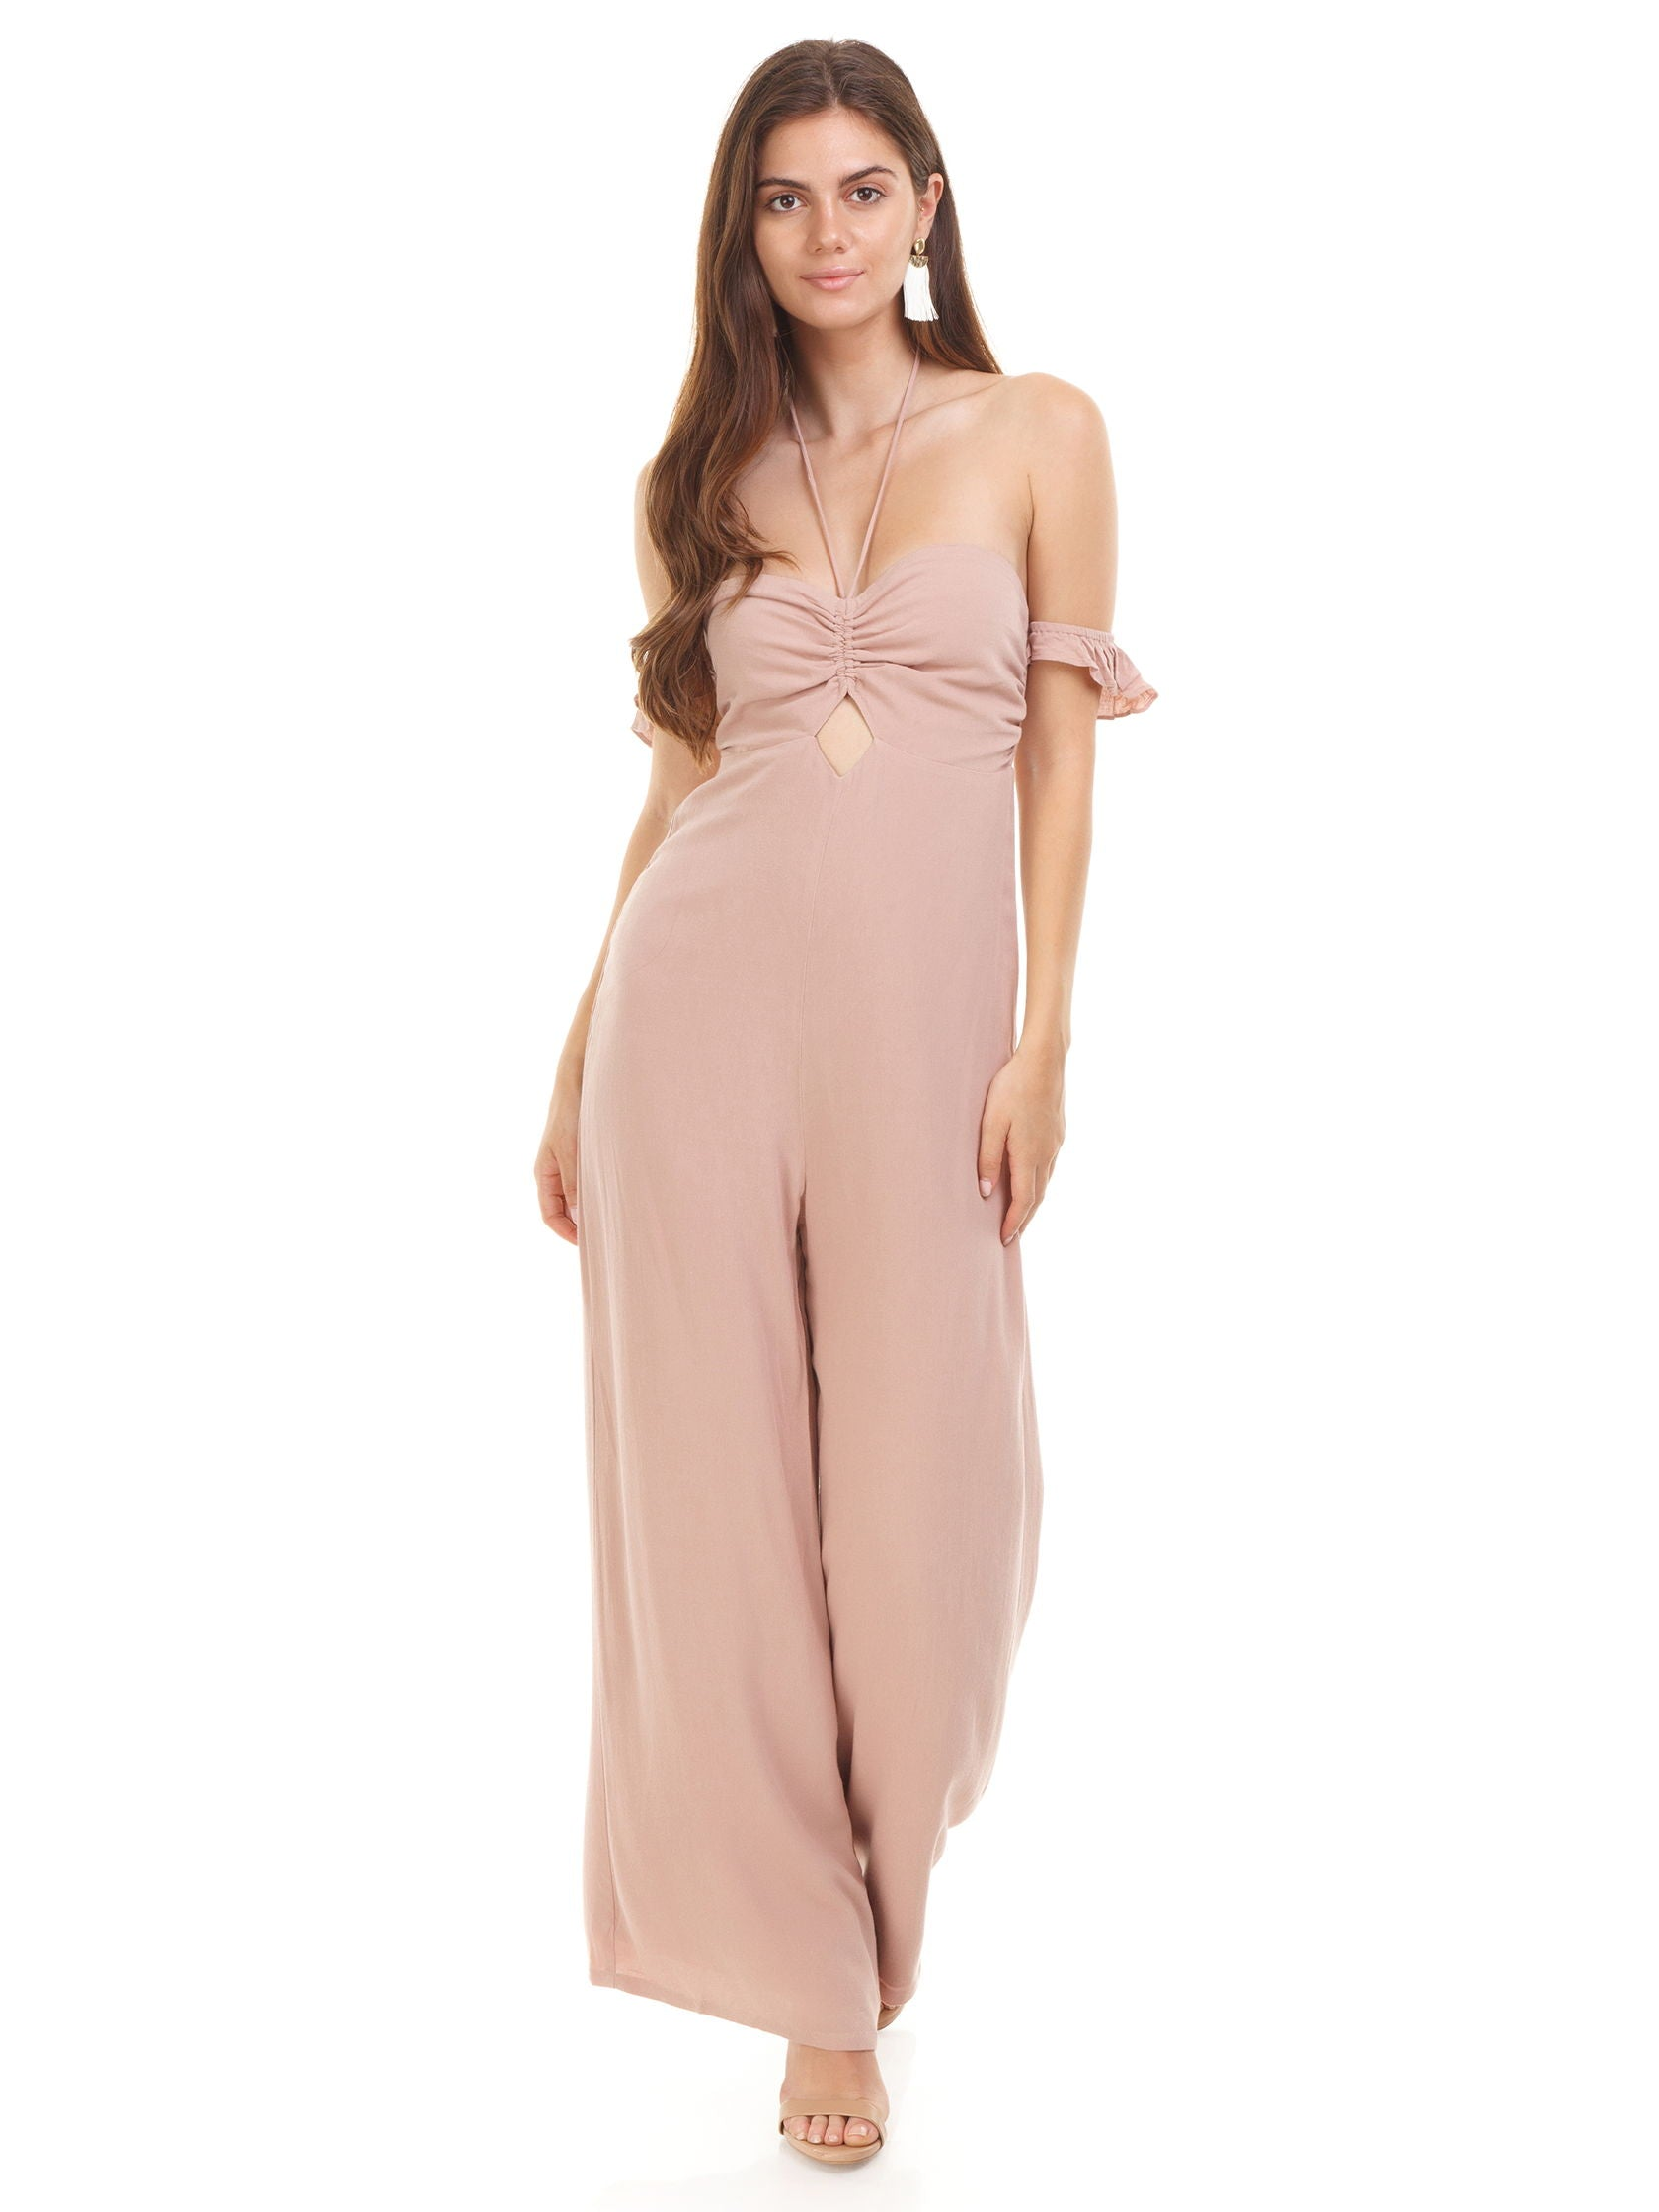 Girl outfit in a jumpsuit rental from Sadie & Sage called Off Shoulder Babydoll Jumpsuit